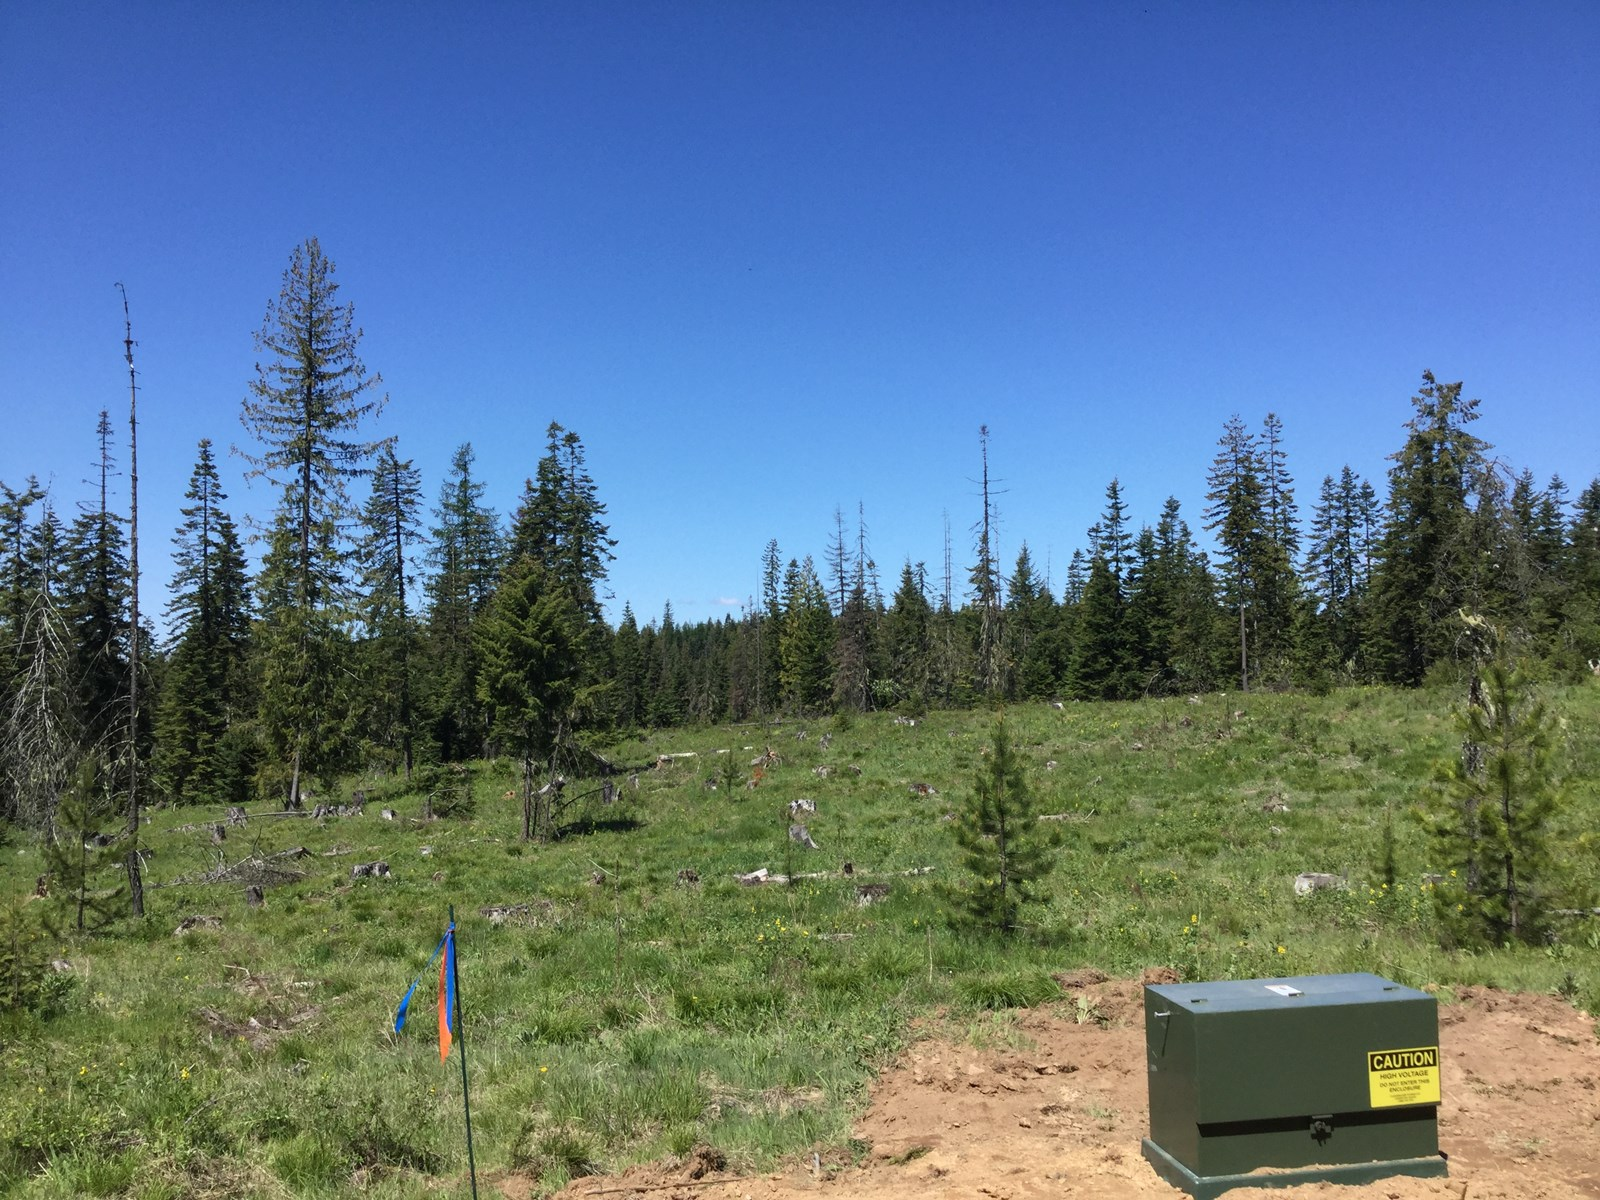 Acreage For Sale near Orofino, Idaho